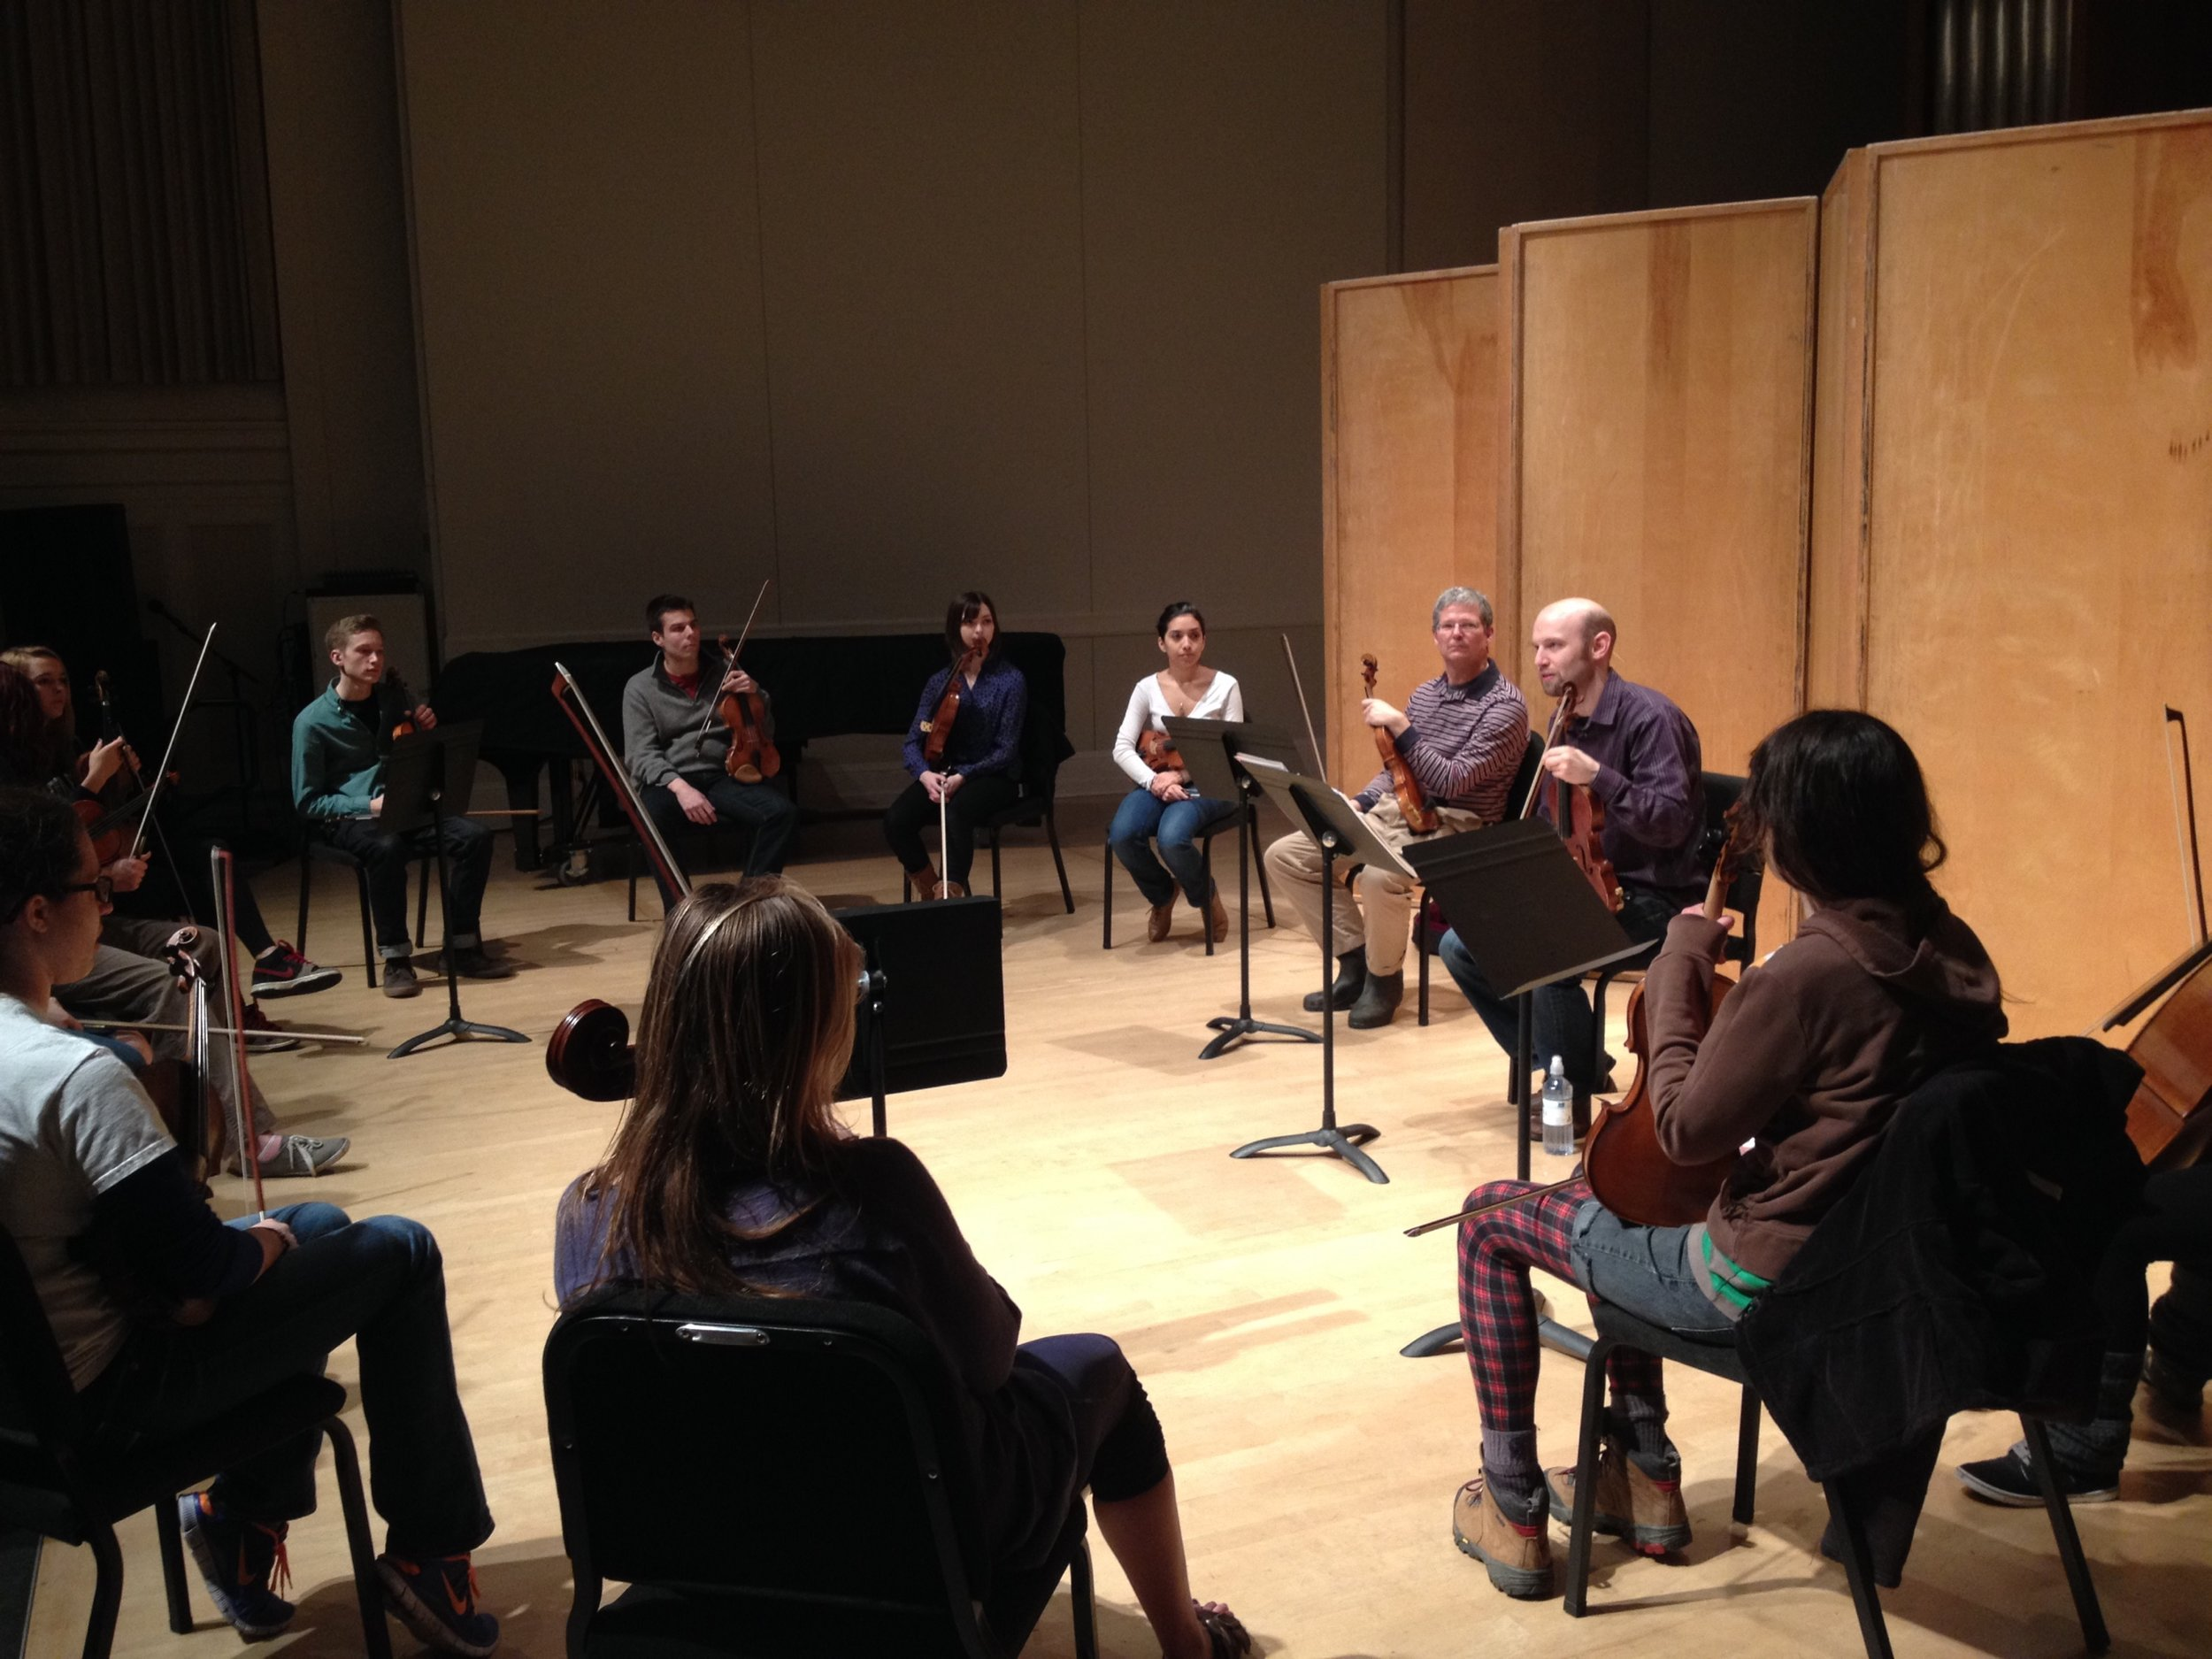 Brandon teaching violin masterclass to Music Majors at University of Oregon